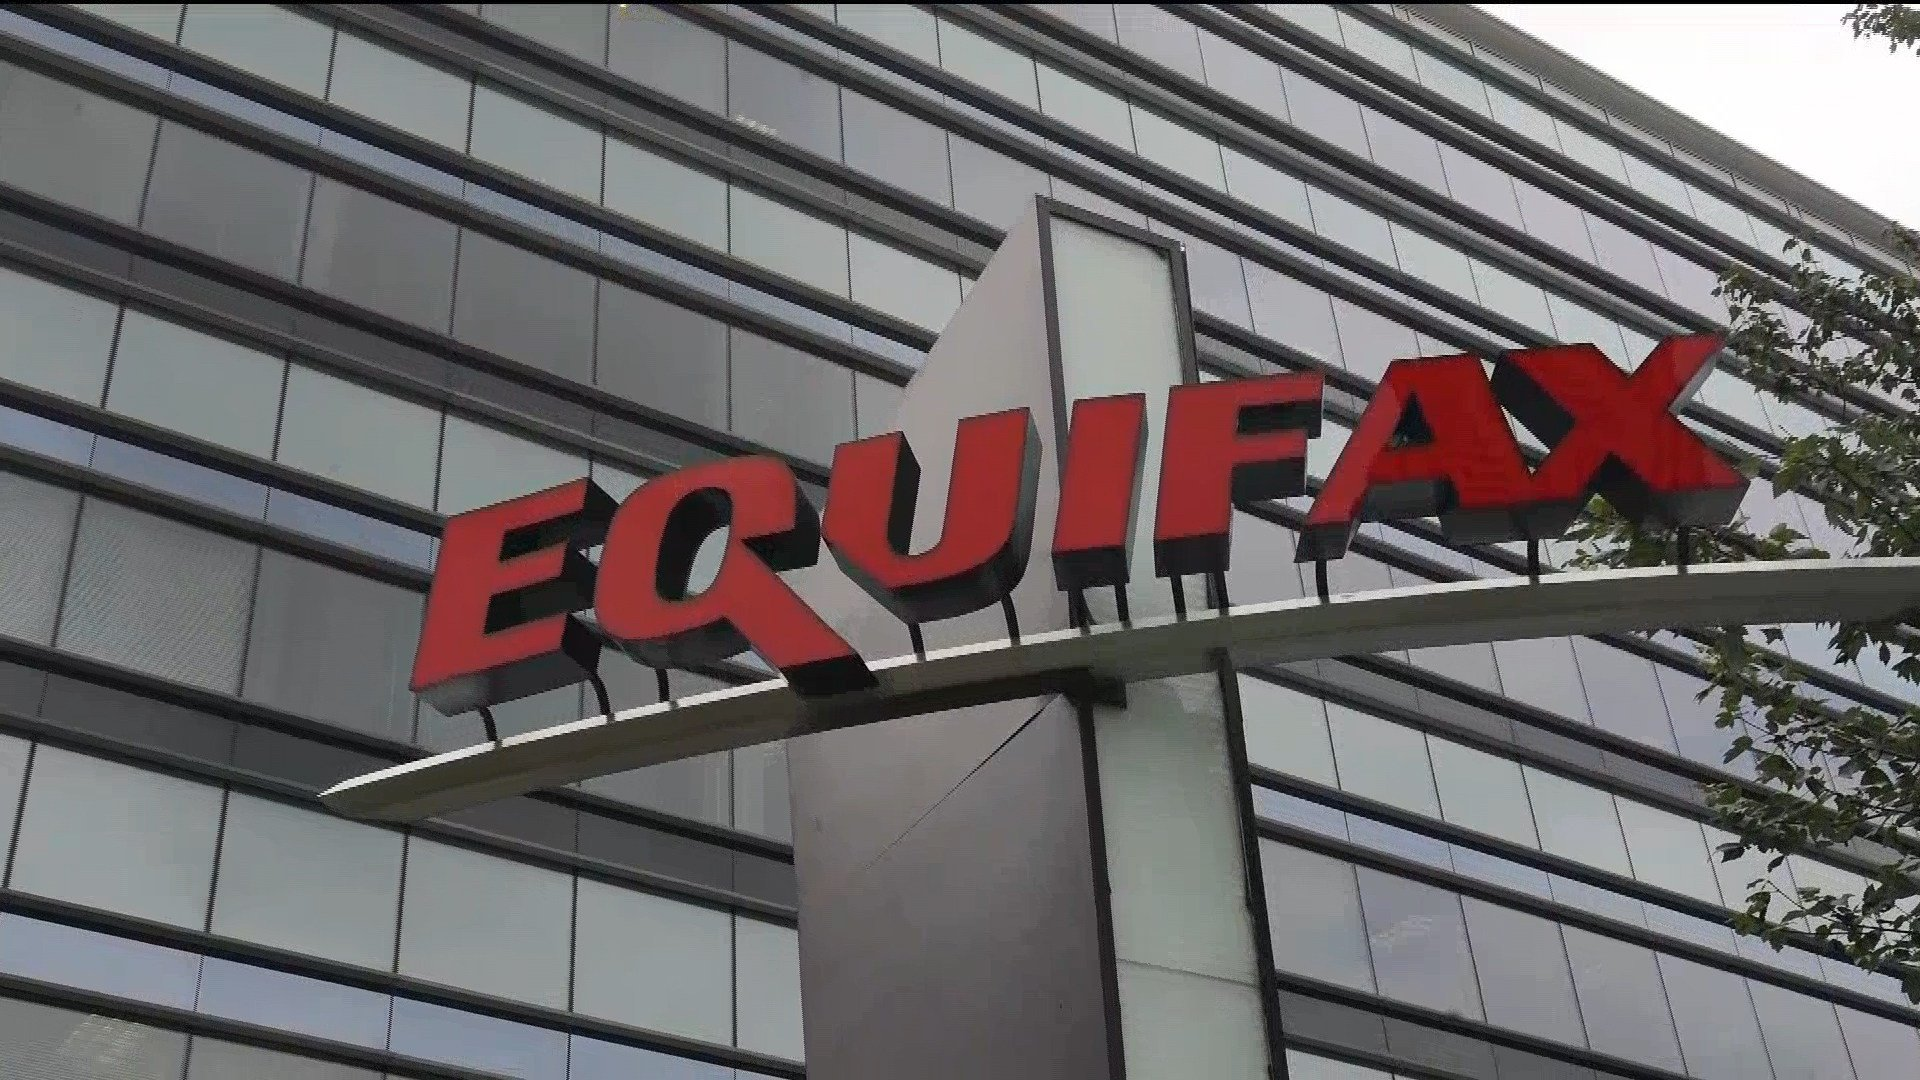 Millions of Americans Affected By Massive Equifax Data Breach